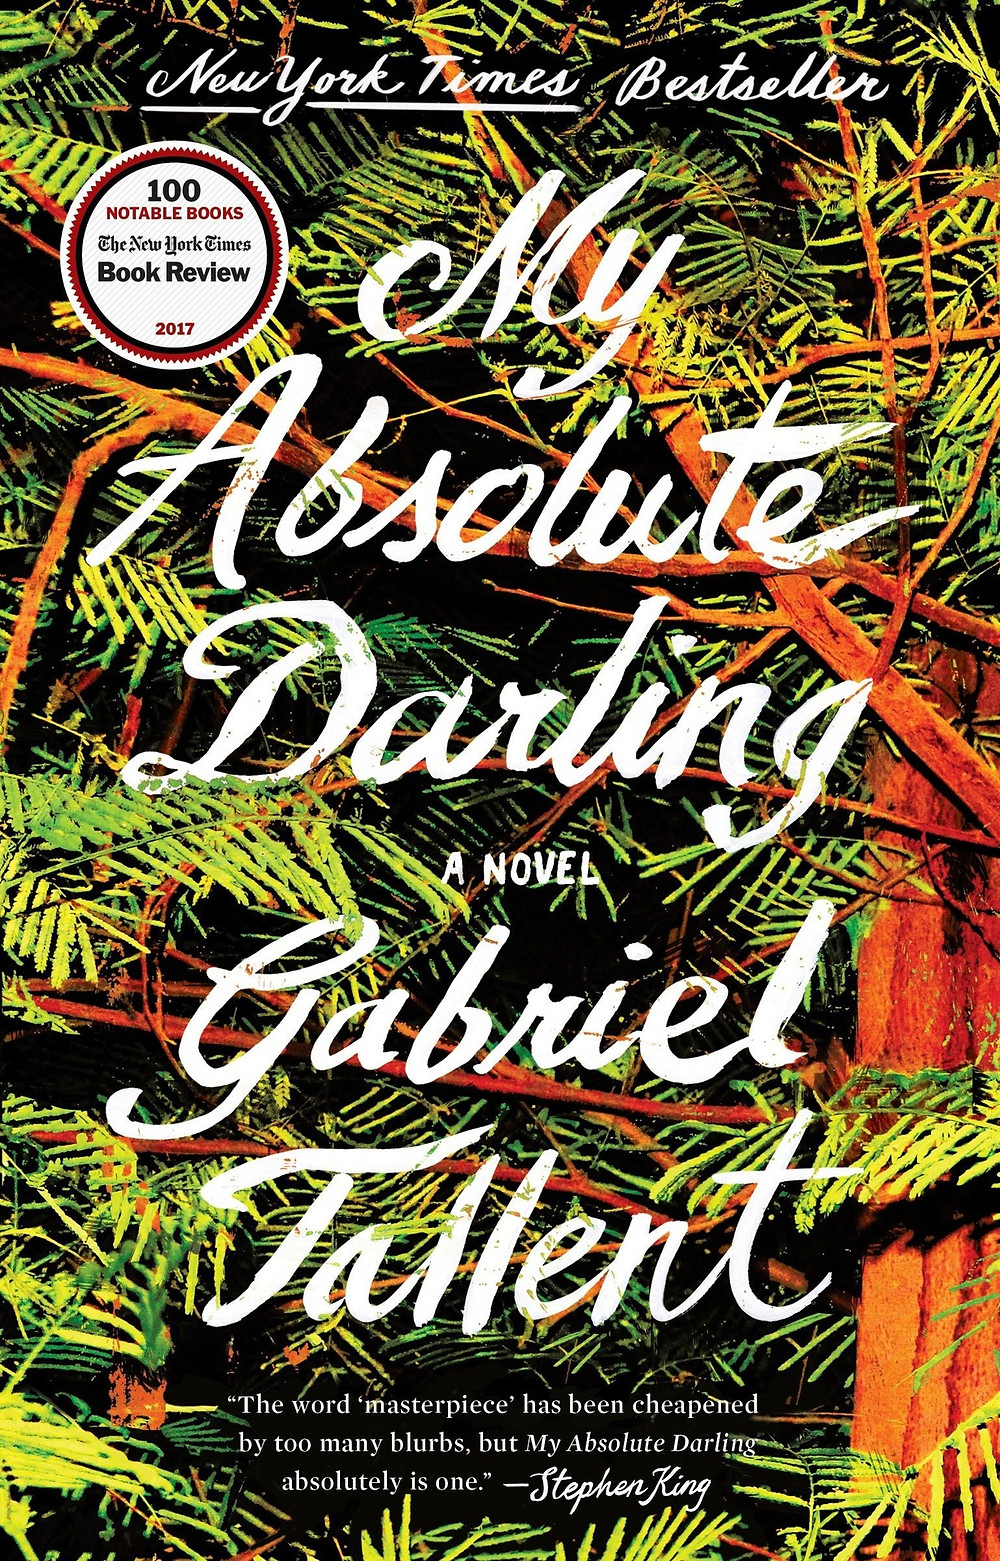 My Absolute Darling by Gabriel Tallent : the book slut bookre views quarentine reads books for isolation jungle book cover, leaves palm trees green